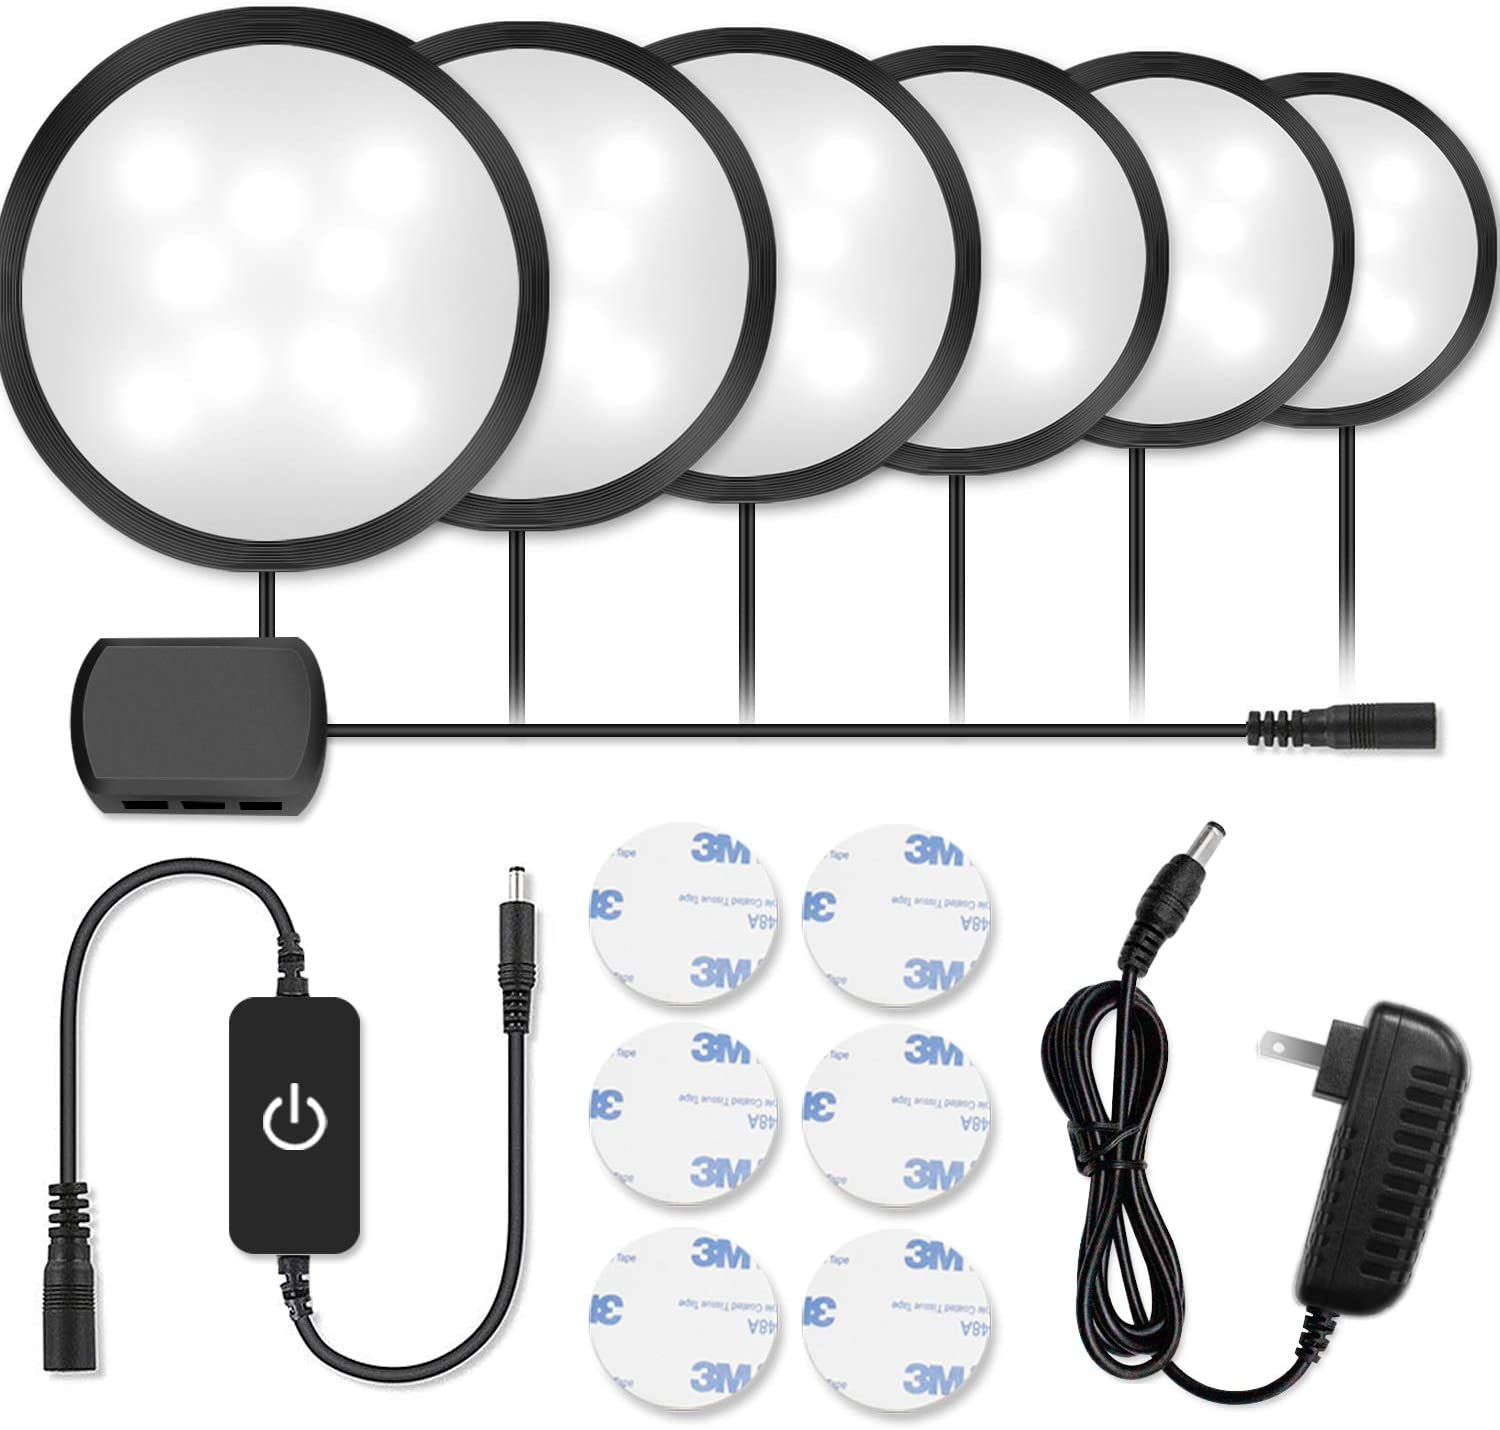 Newest Black LED Under Cabinet Lighting Kit, 1020 Lumens LED Puck Light, 5000K Daylight White, CRI90 , Touch Dimming, All Accessories Included, for Kitchen, Closet Lights, Safe Light, 6-Pack